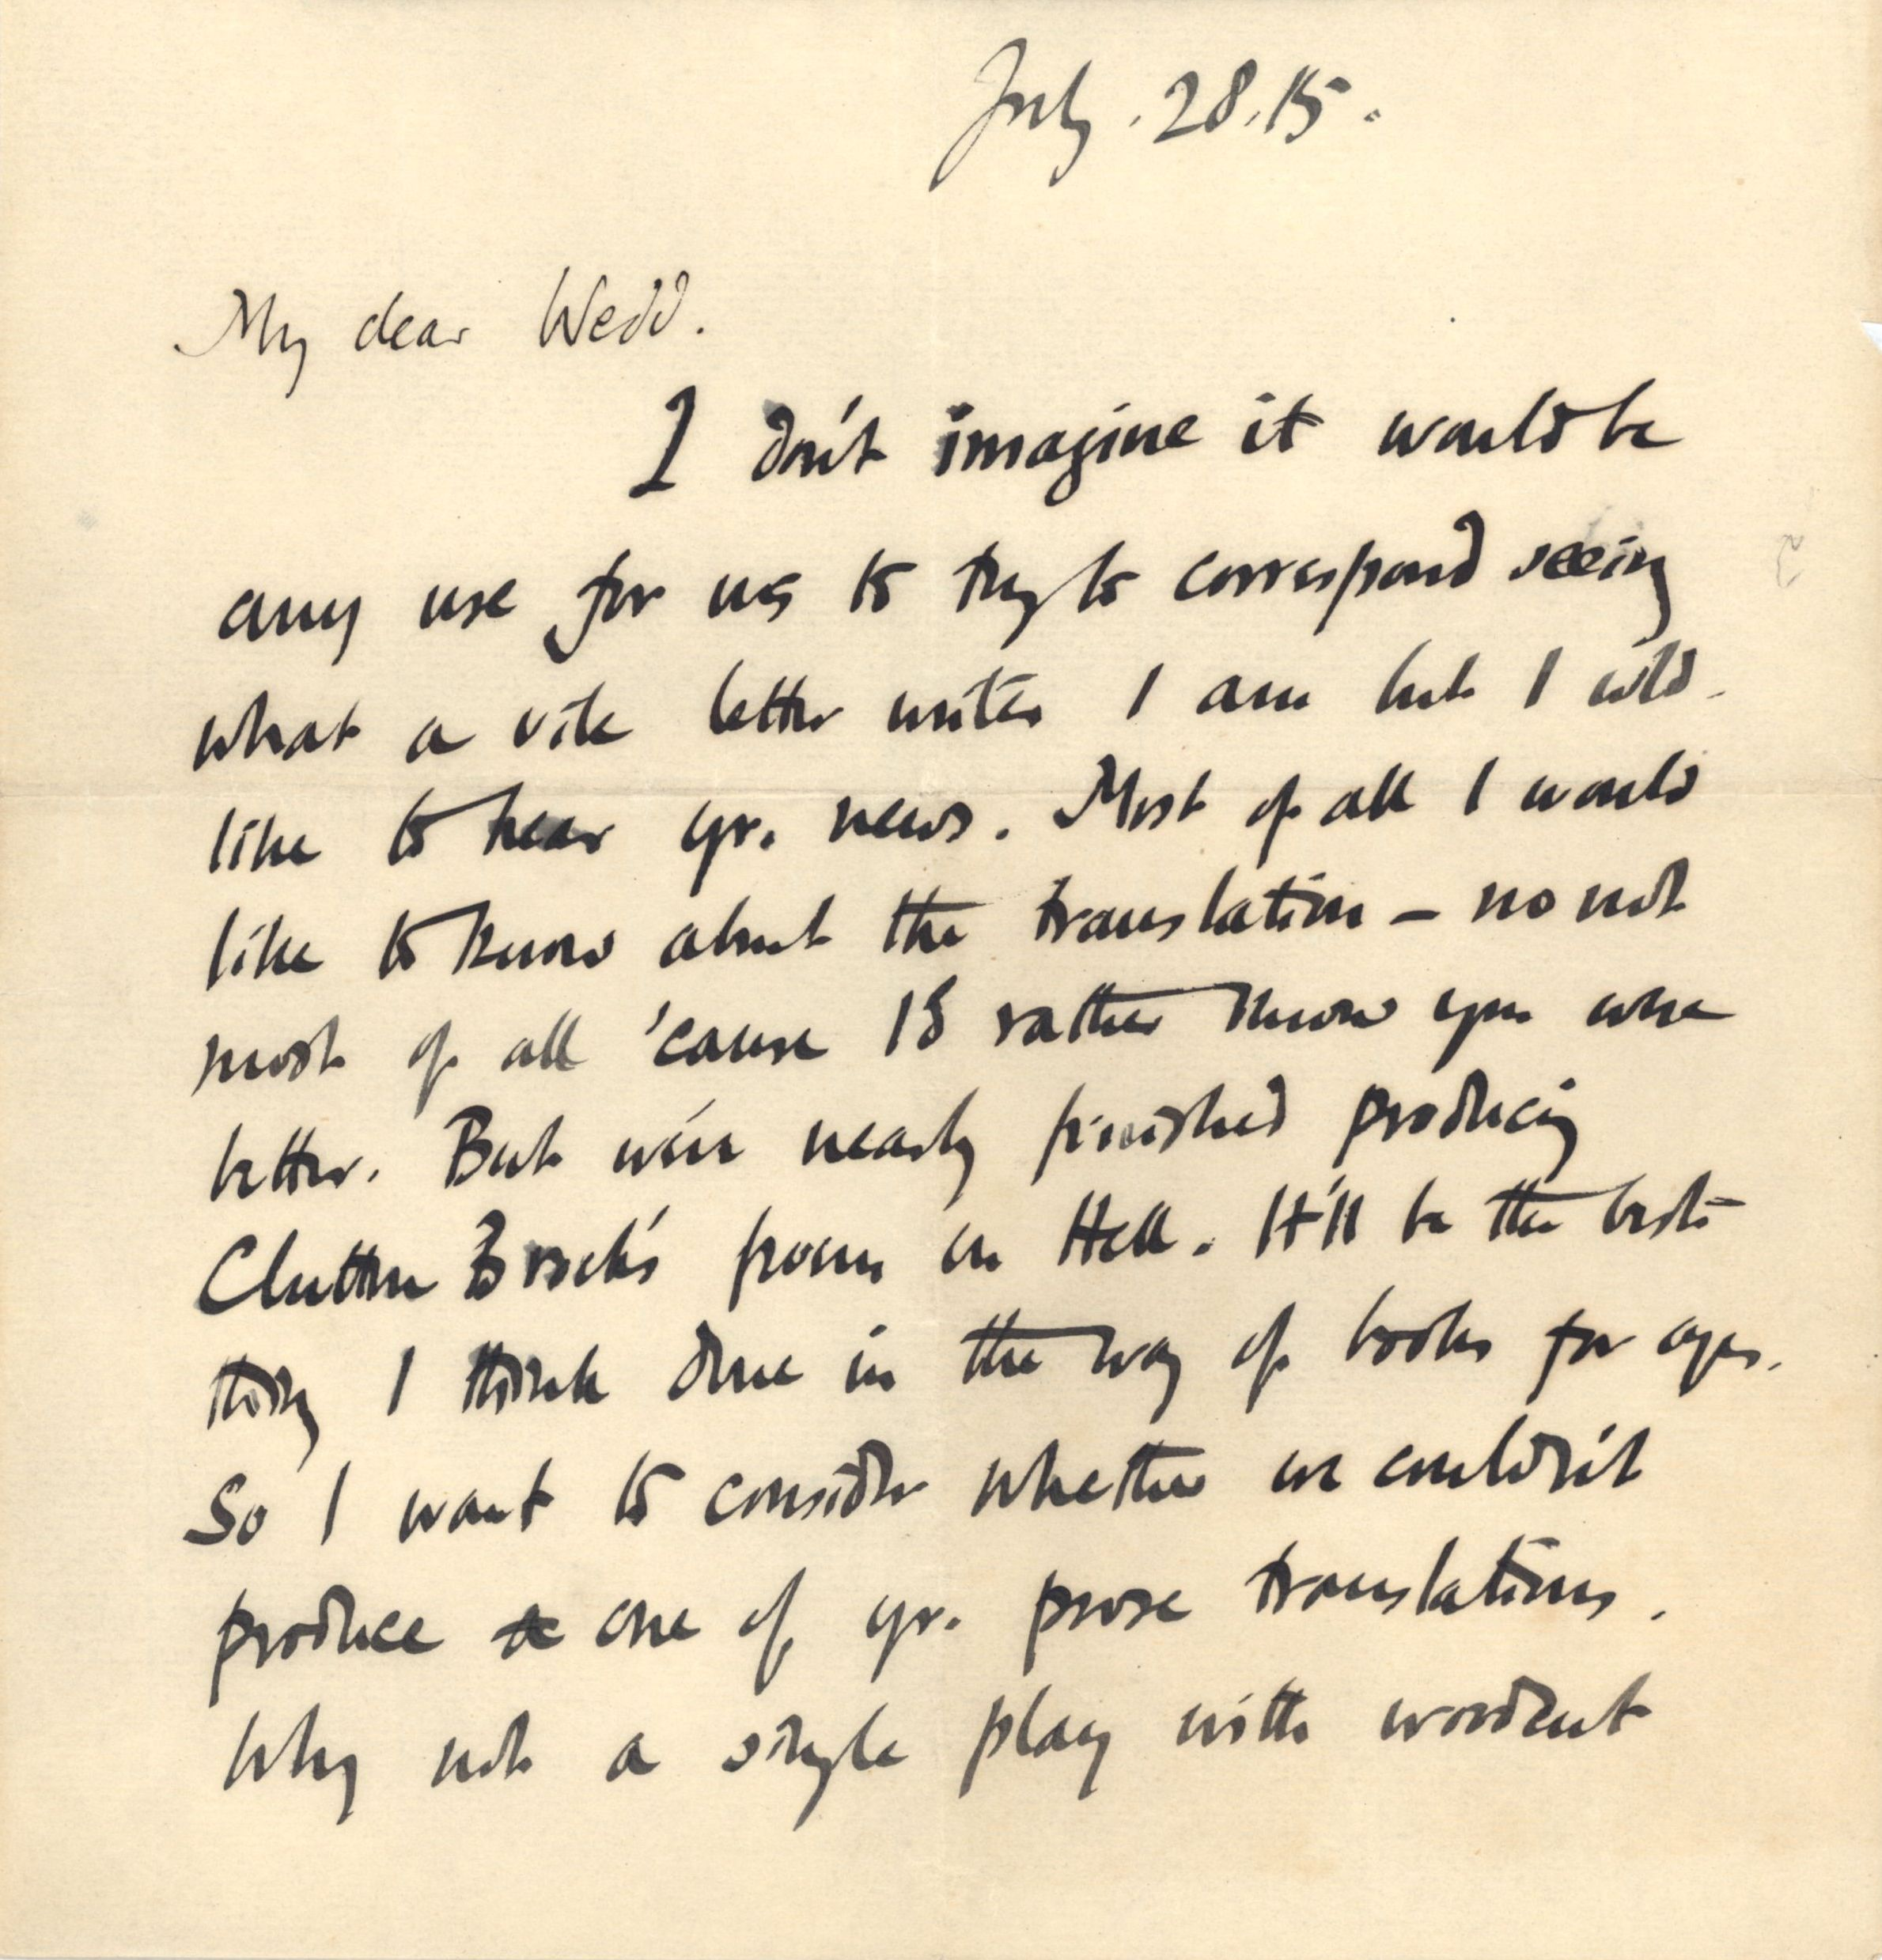 First page of a letter from Roger Fry to Nathaniel Wedd, 28 July 1915, concerning his visit to France. [NW/2/27 - Omega letterhead removed]